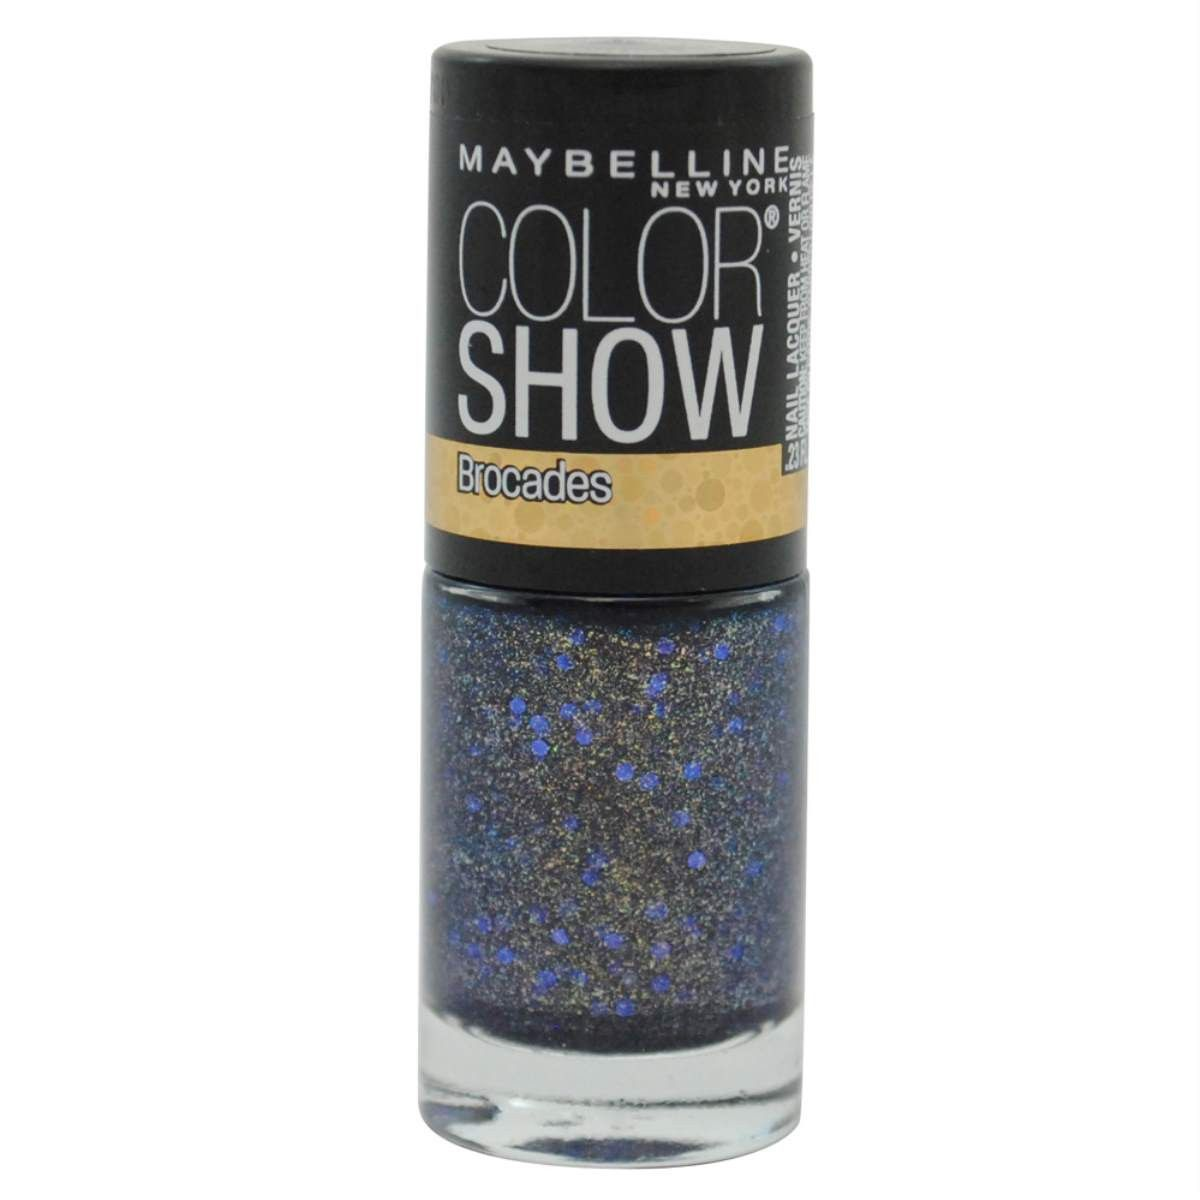 Maybelline Color Show Brocades Nail Lacquer #755 Embellished Blues